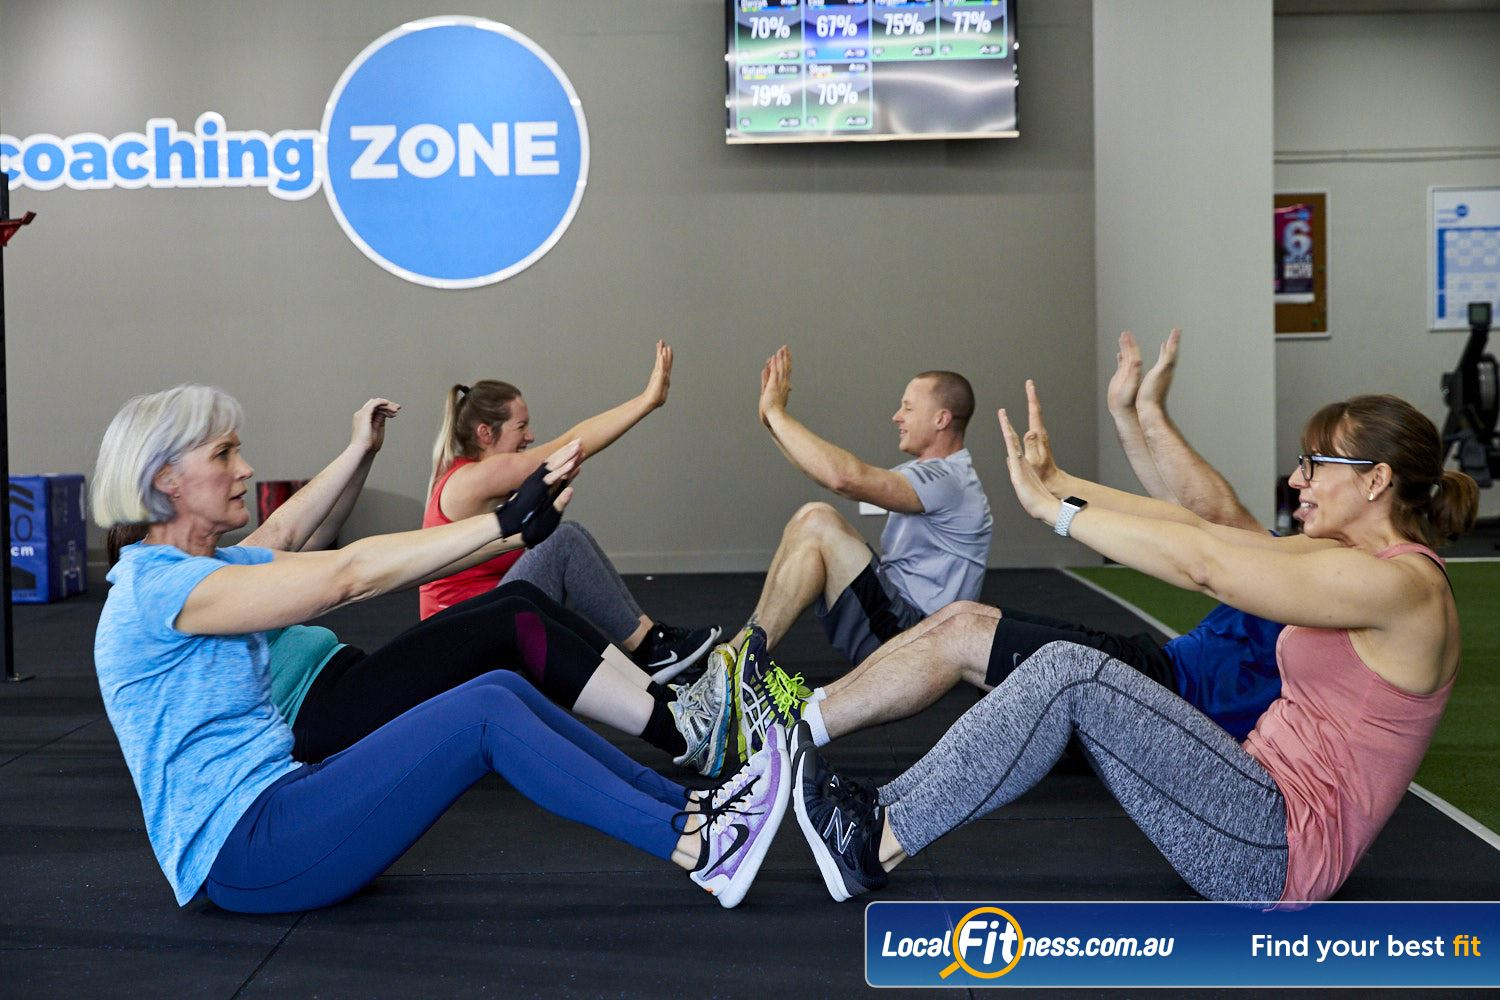 Coaching Zone Ferntree Gully Our classes on burning fat, core conditioning, team work and more.